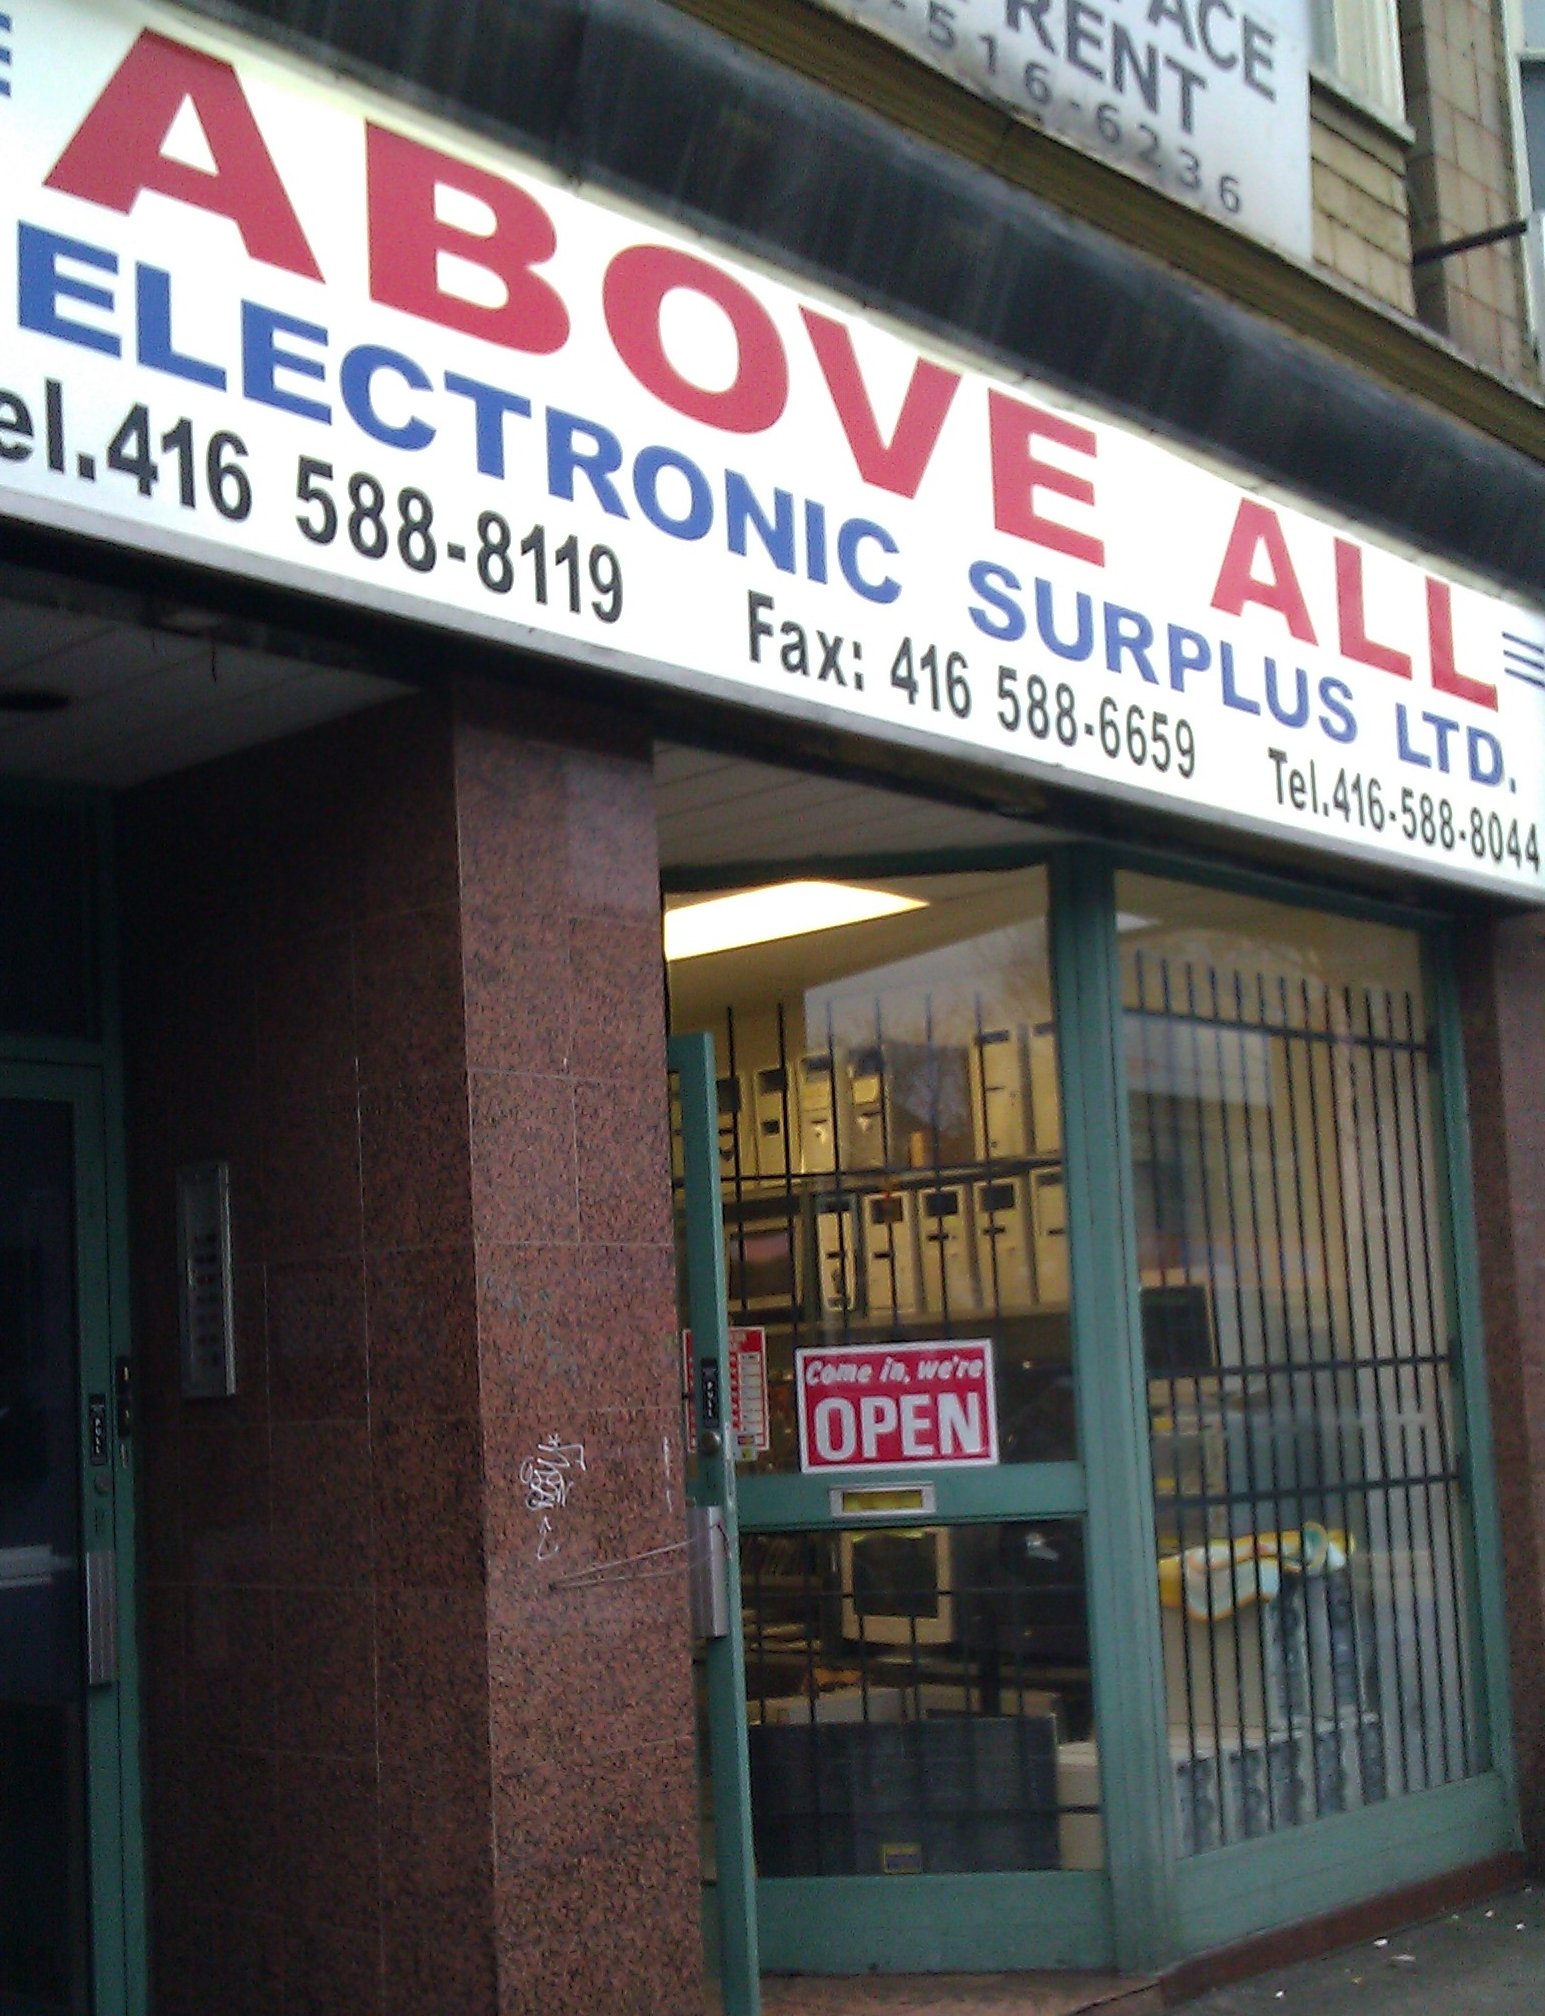 Above All Electronic Surplus | West Annex News